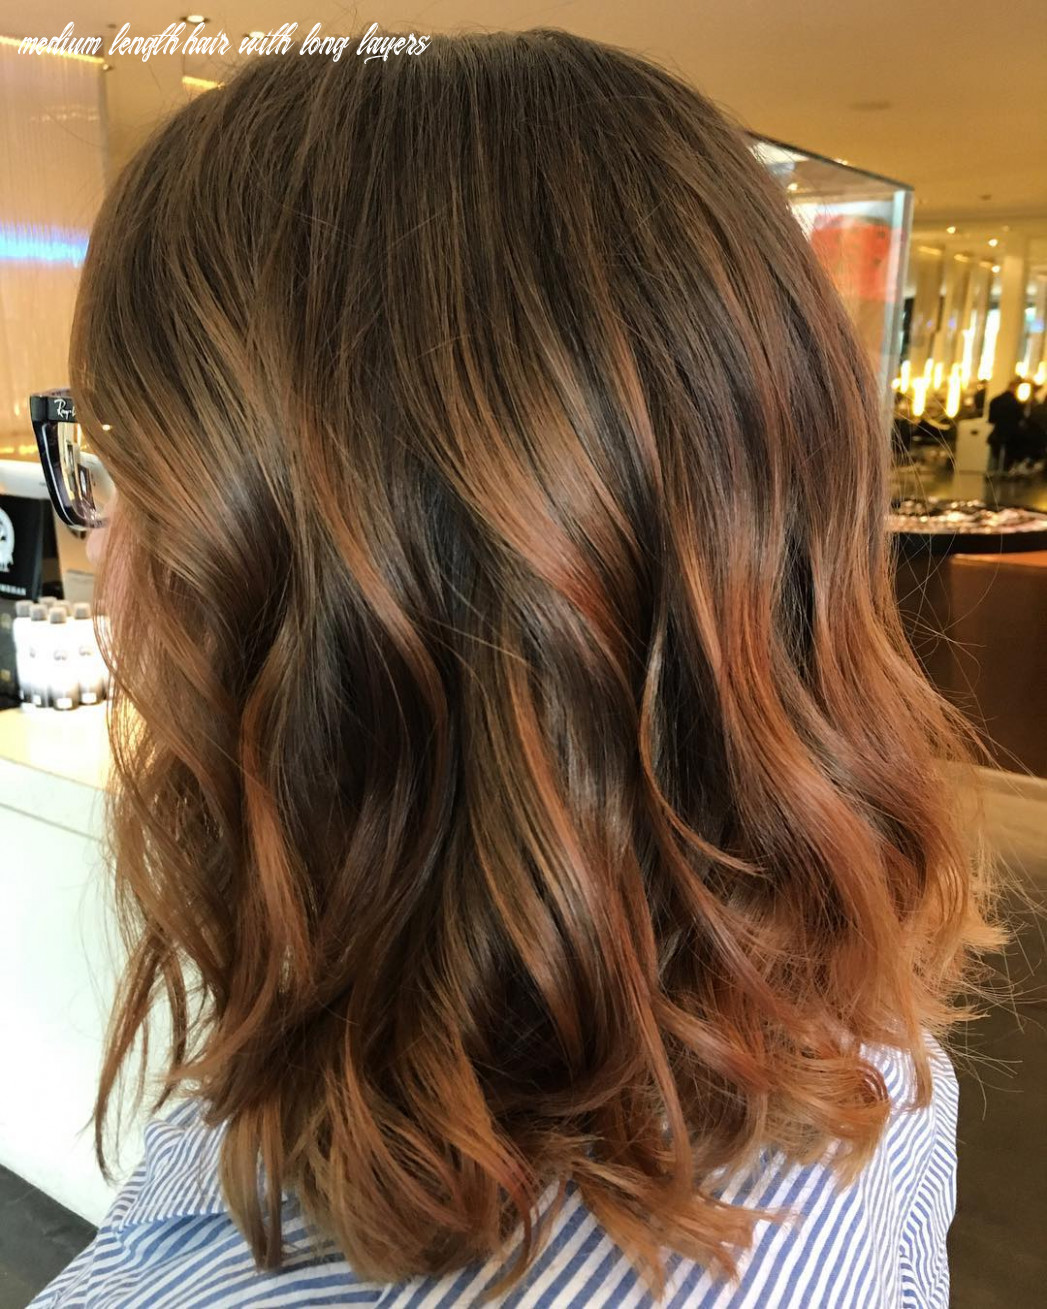 12 Best Medium Length Layered Hairstyles 12 - Hairstyles Weekly